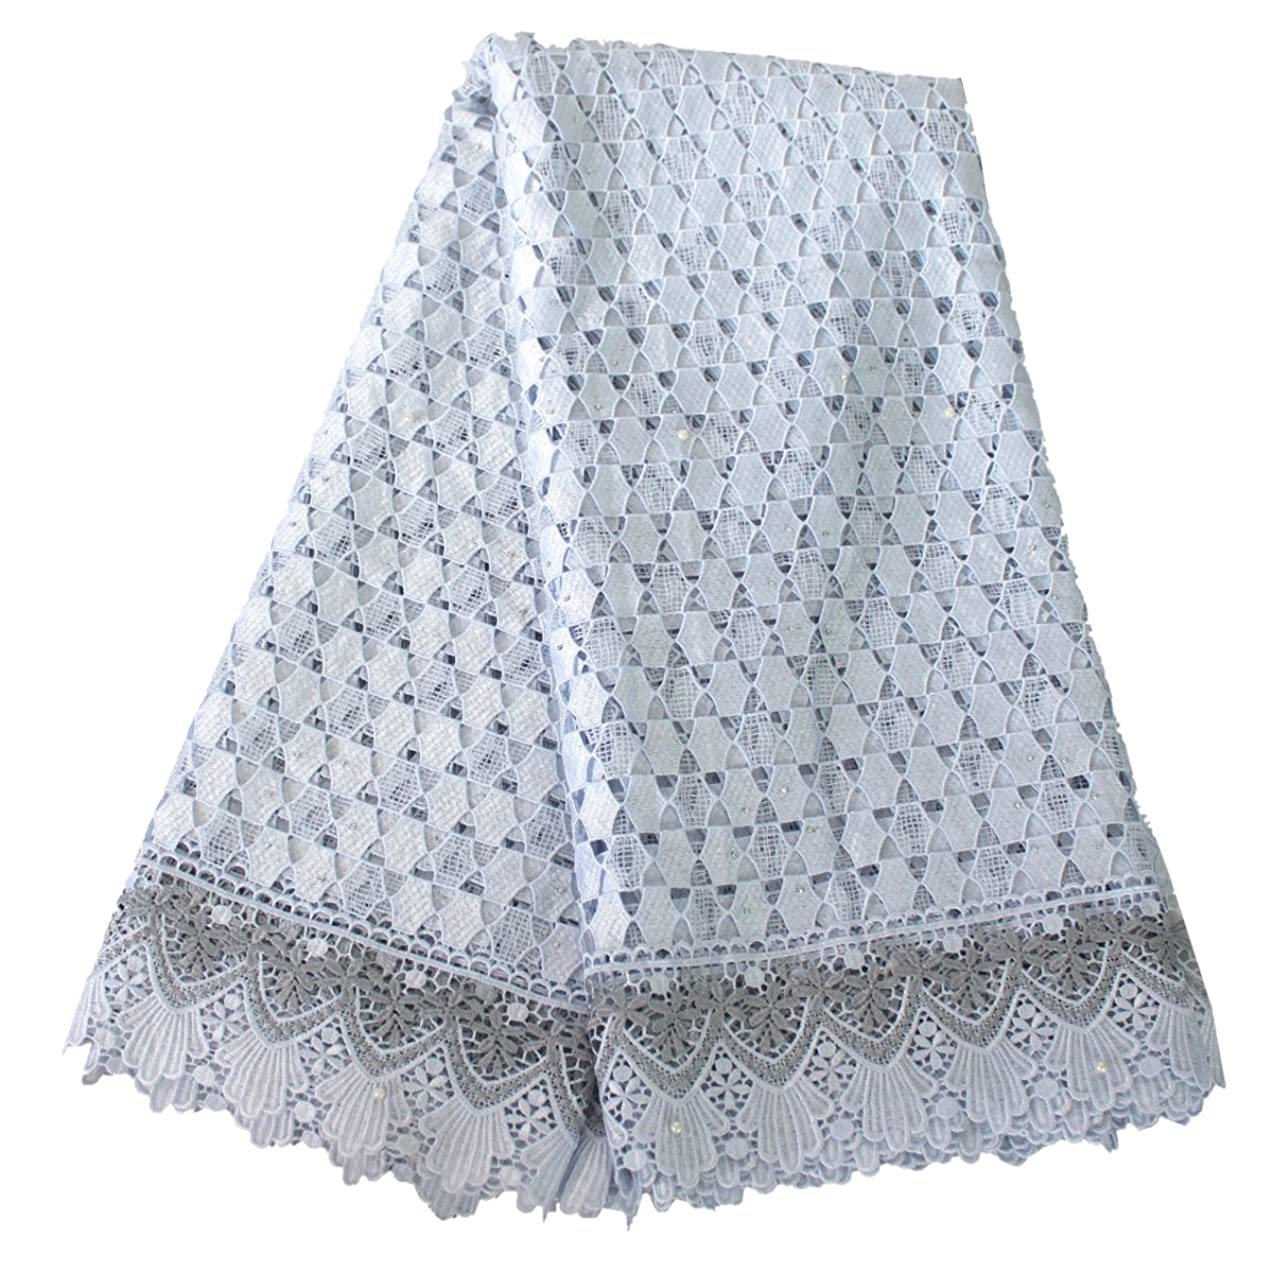 Aisunne 5 Yards African Lace Fabrics Classics Nigerian French Lace Fabric with Embroidered For Wedding Party Dresses (Silver)